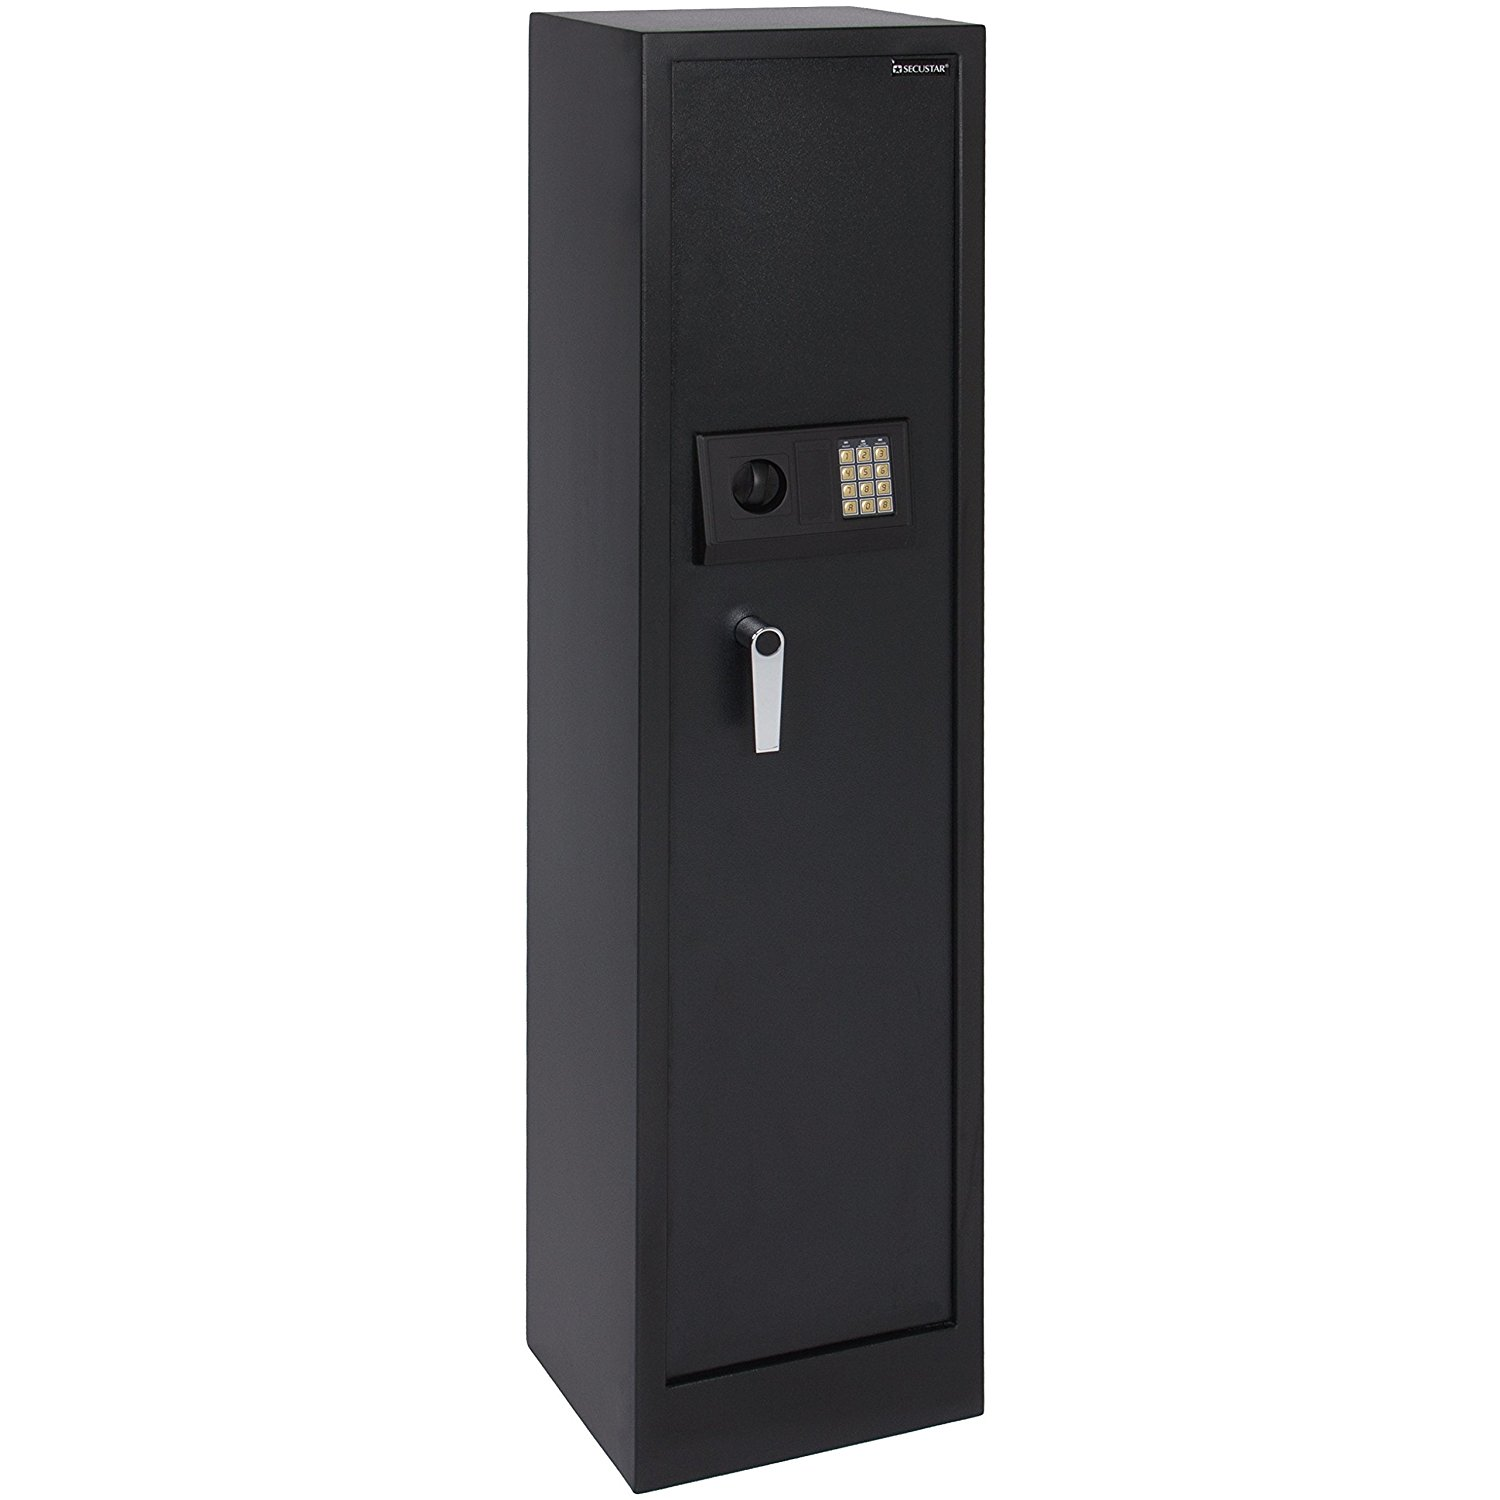 check out our top rated corner gun safe